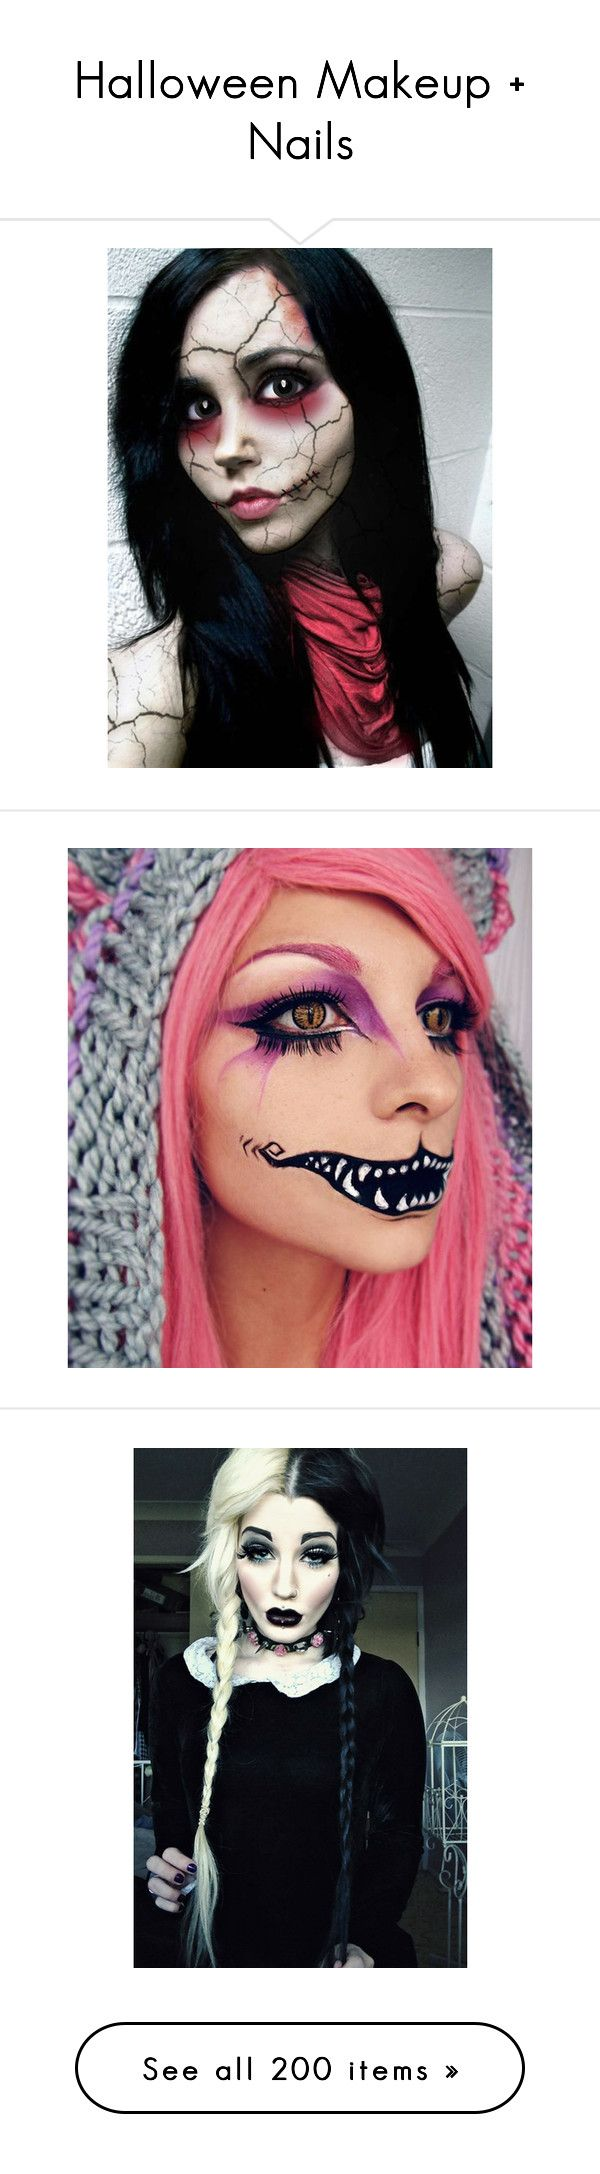 """Halloween Makeup + Nails"" by once-upon-a-dream123 ❤ liked on Polyvore featuring Halloween, pretty, scary, Costume, home, home decor, holiday decorations, halloween home decor, beauty products e makeup"